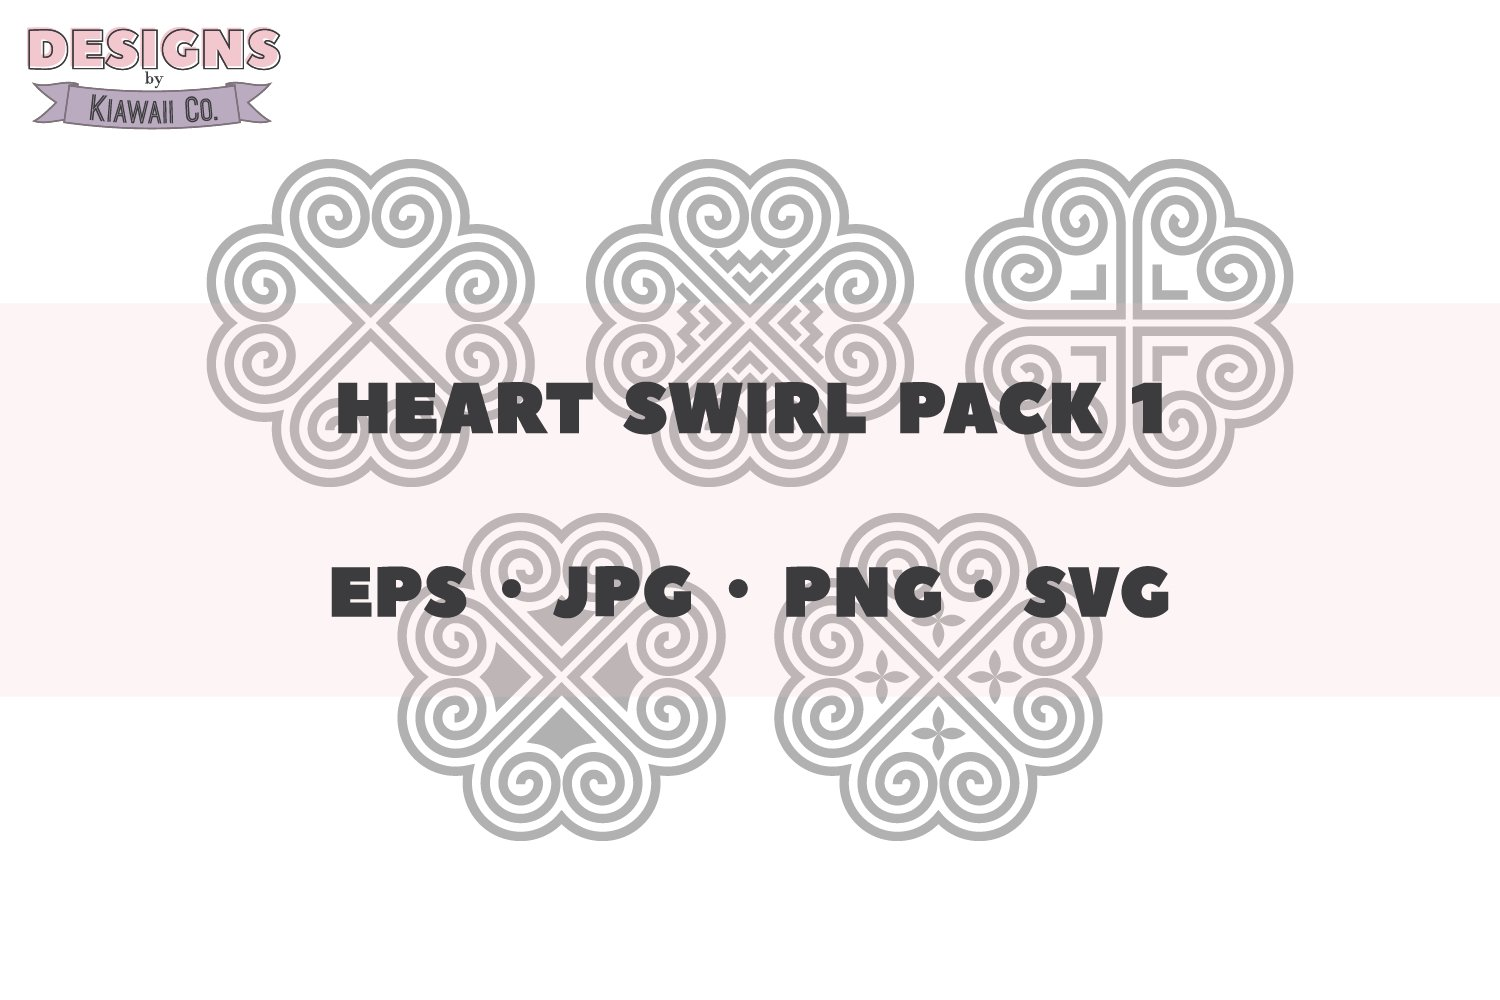 Hmong Heart Swirl Pack 1 - EPS - JPG - PNG - SVG example image 2